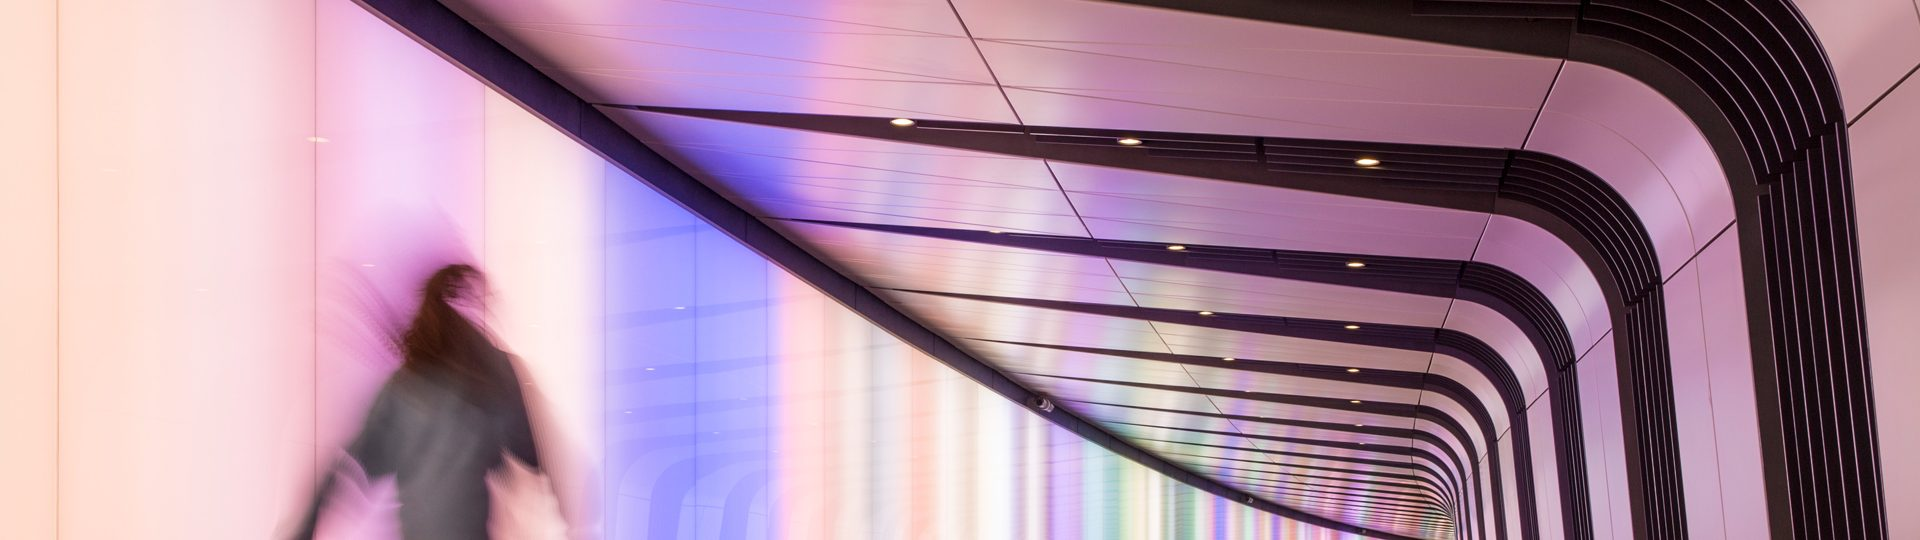 Specialist lighting solutions | Kings Cross Tunnel | The Light Lab